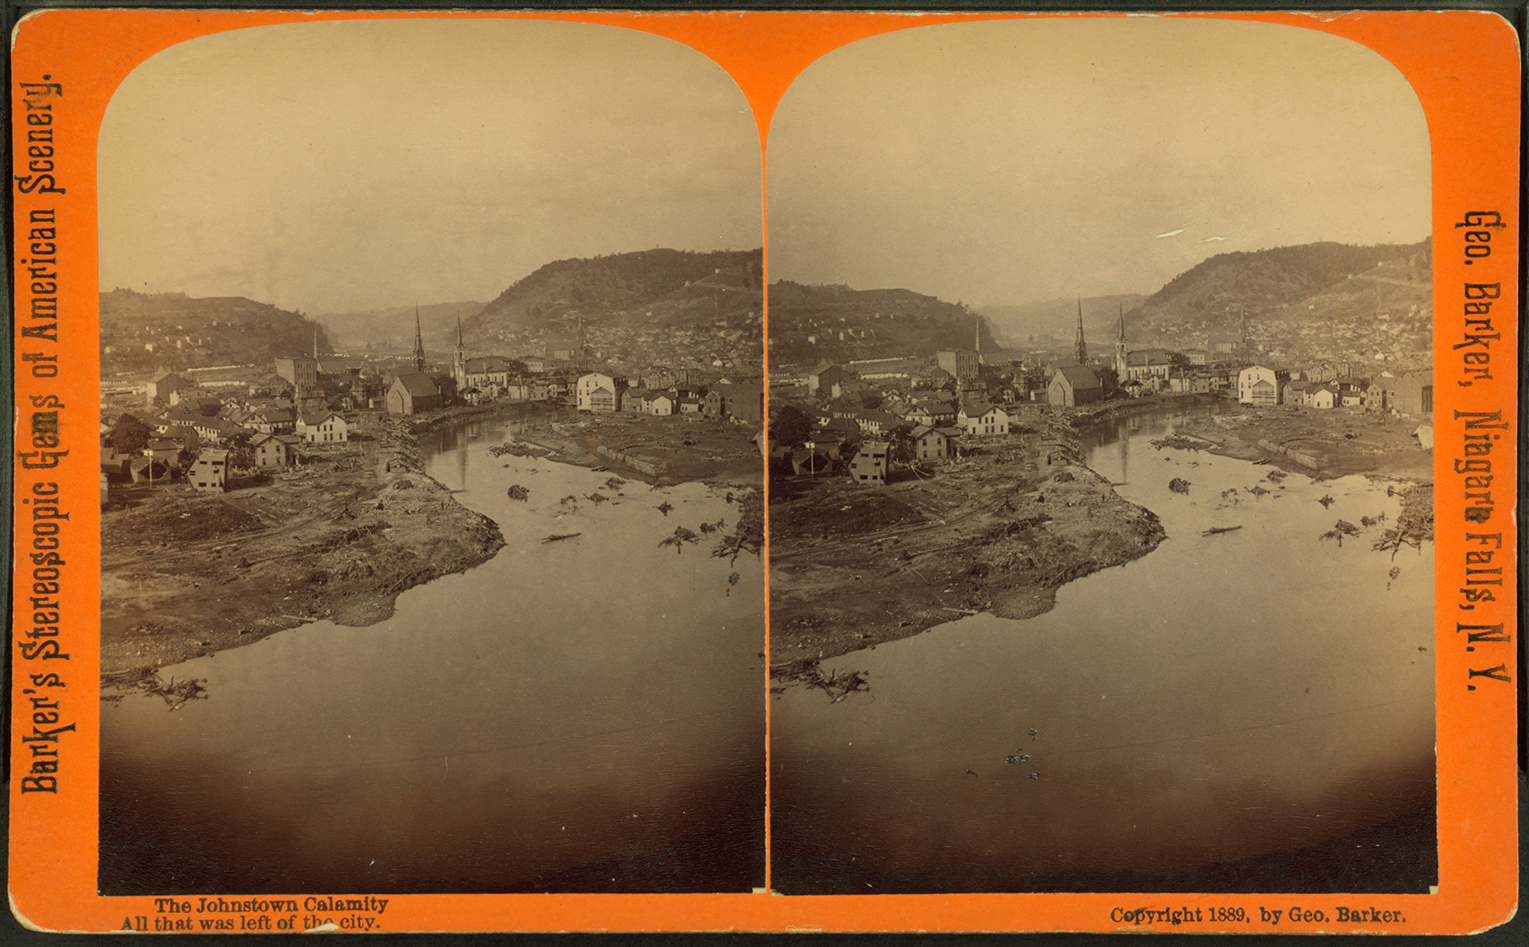 """The Johnstown Calamity"" by George Baker depicts the devastation of the great flood, note homes tossed on their side as the waters recede leaving nothing but mud in an area that was once a residential neighborhood. Image collection of the New York Public Library."